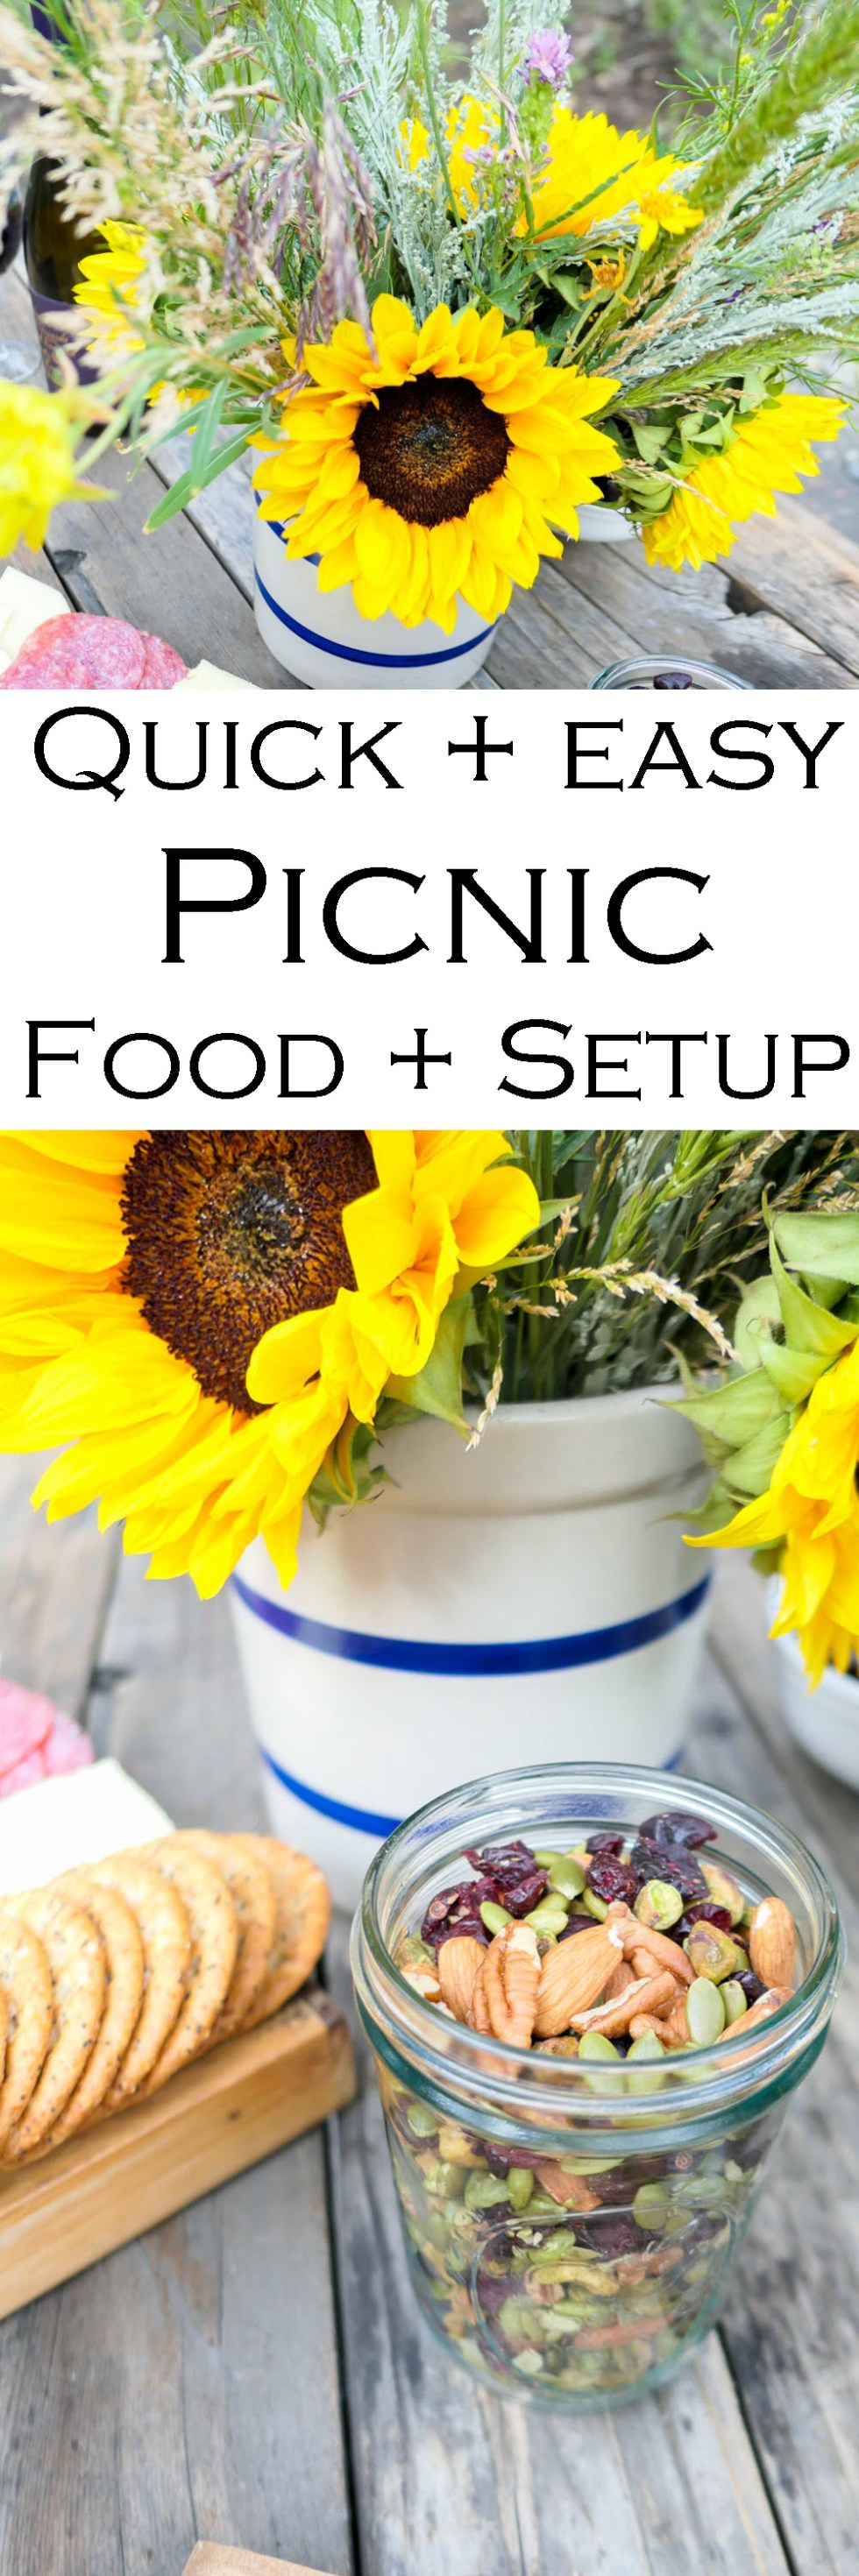 Quick Picnic Food List + Setup - Picnic by the Creek Setup